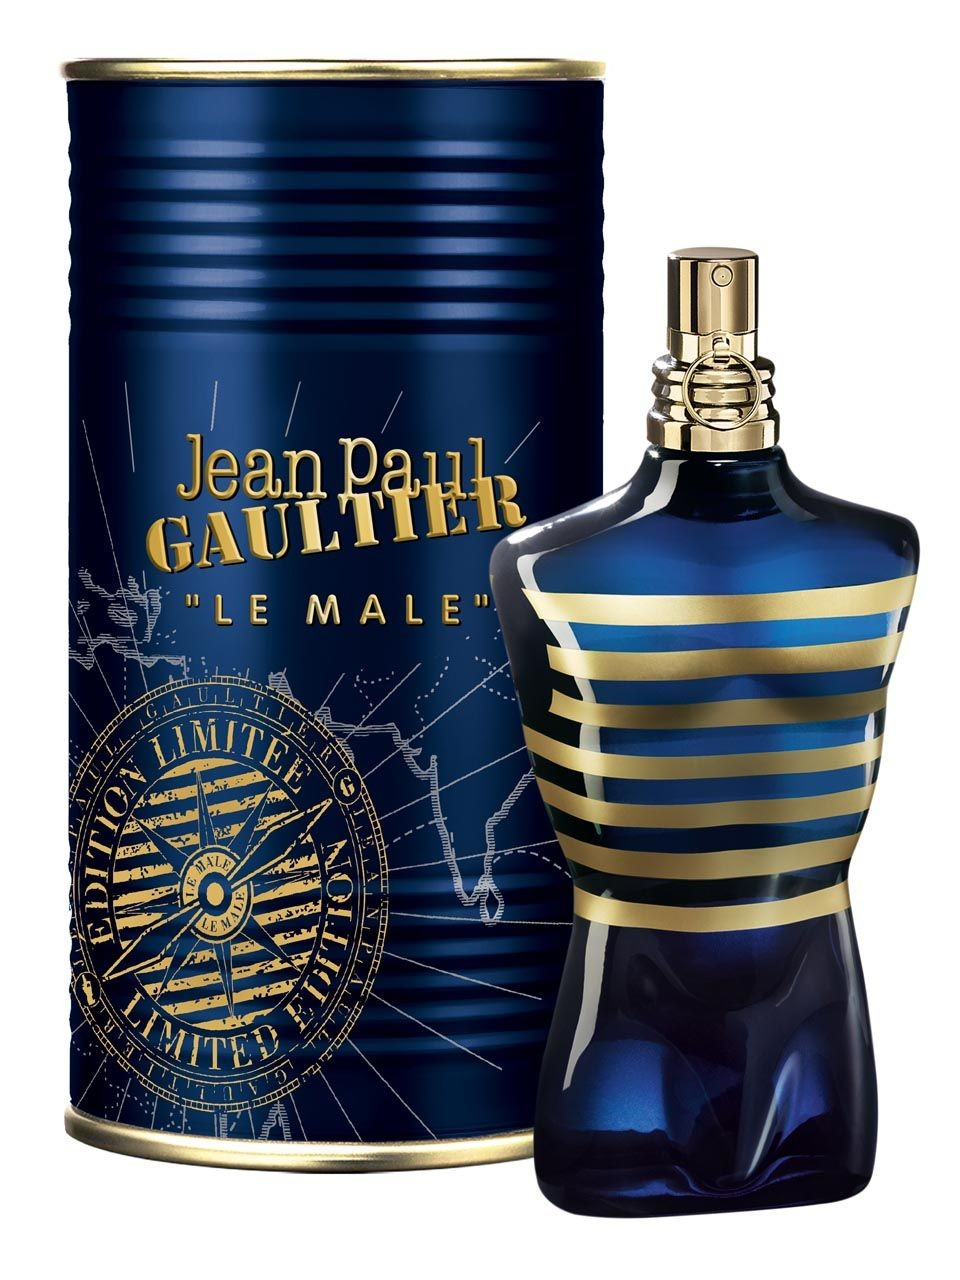 Le Male Capitaine Collector Jean Paul Gaultier Cologne A